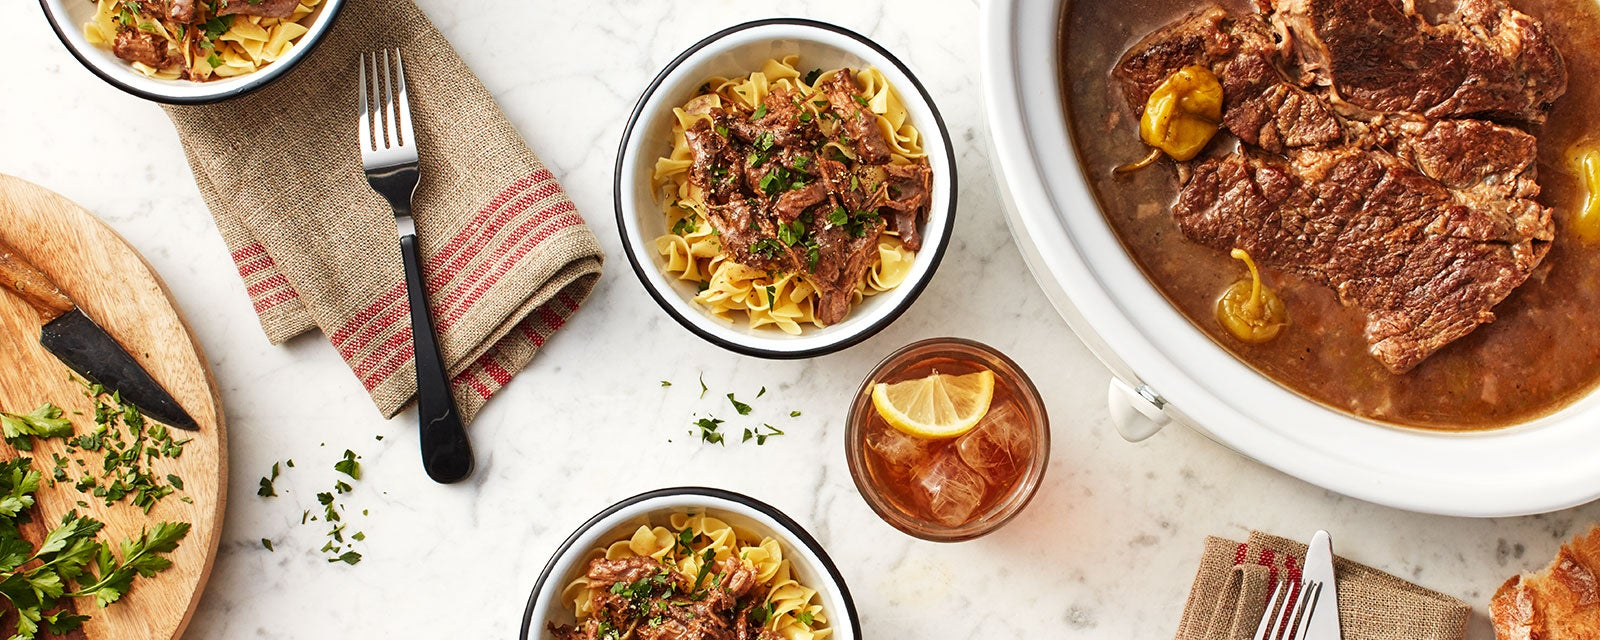 6 Savory Slow Cooker Recipes